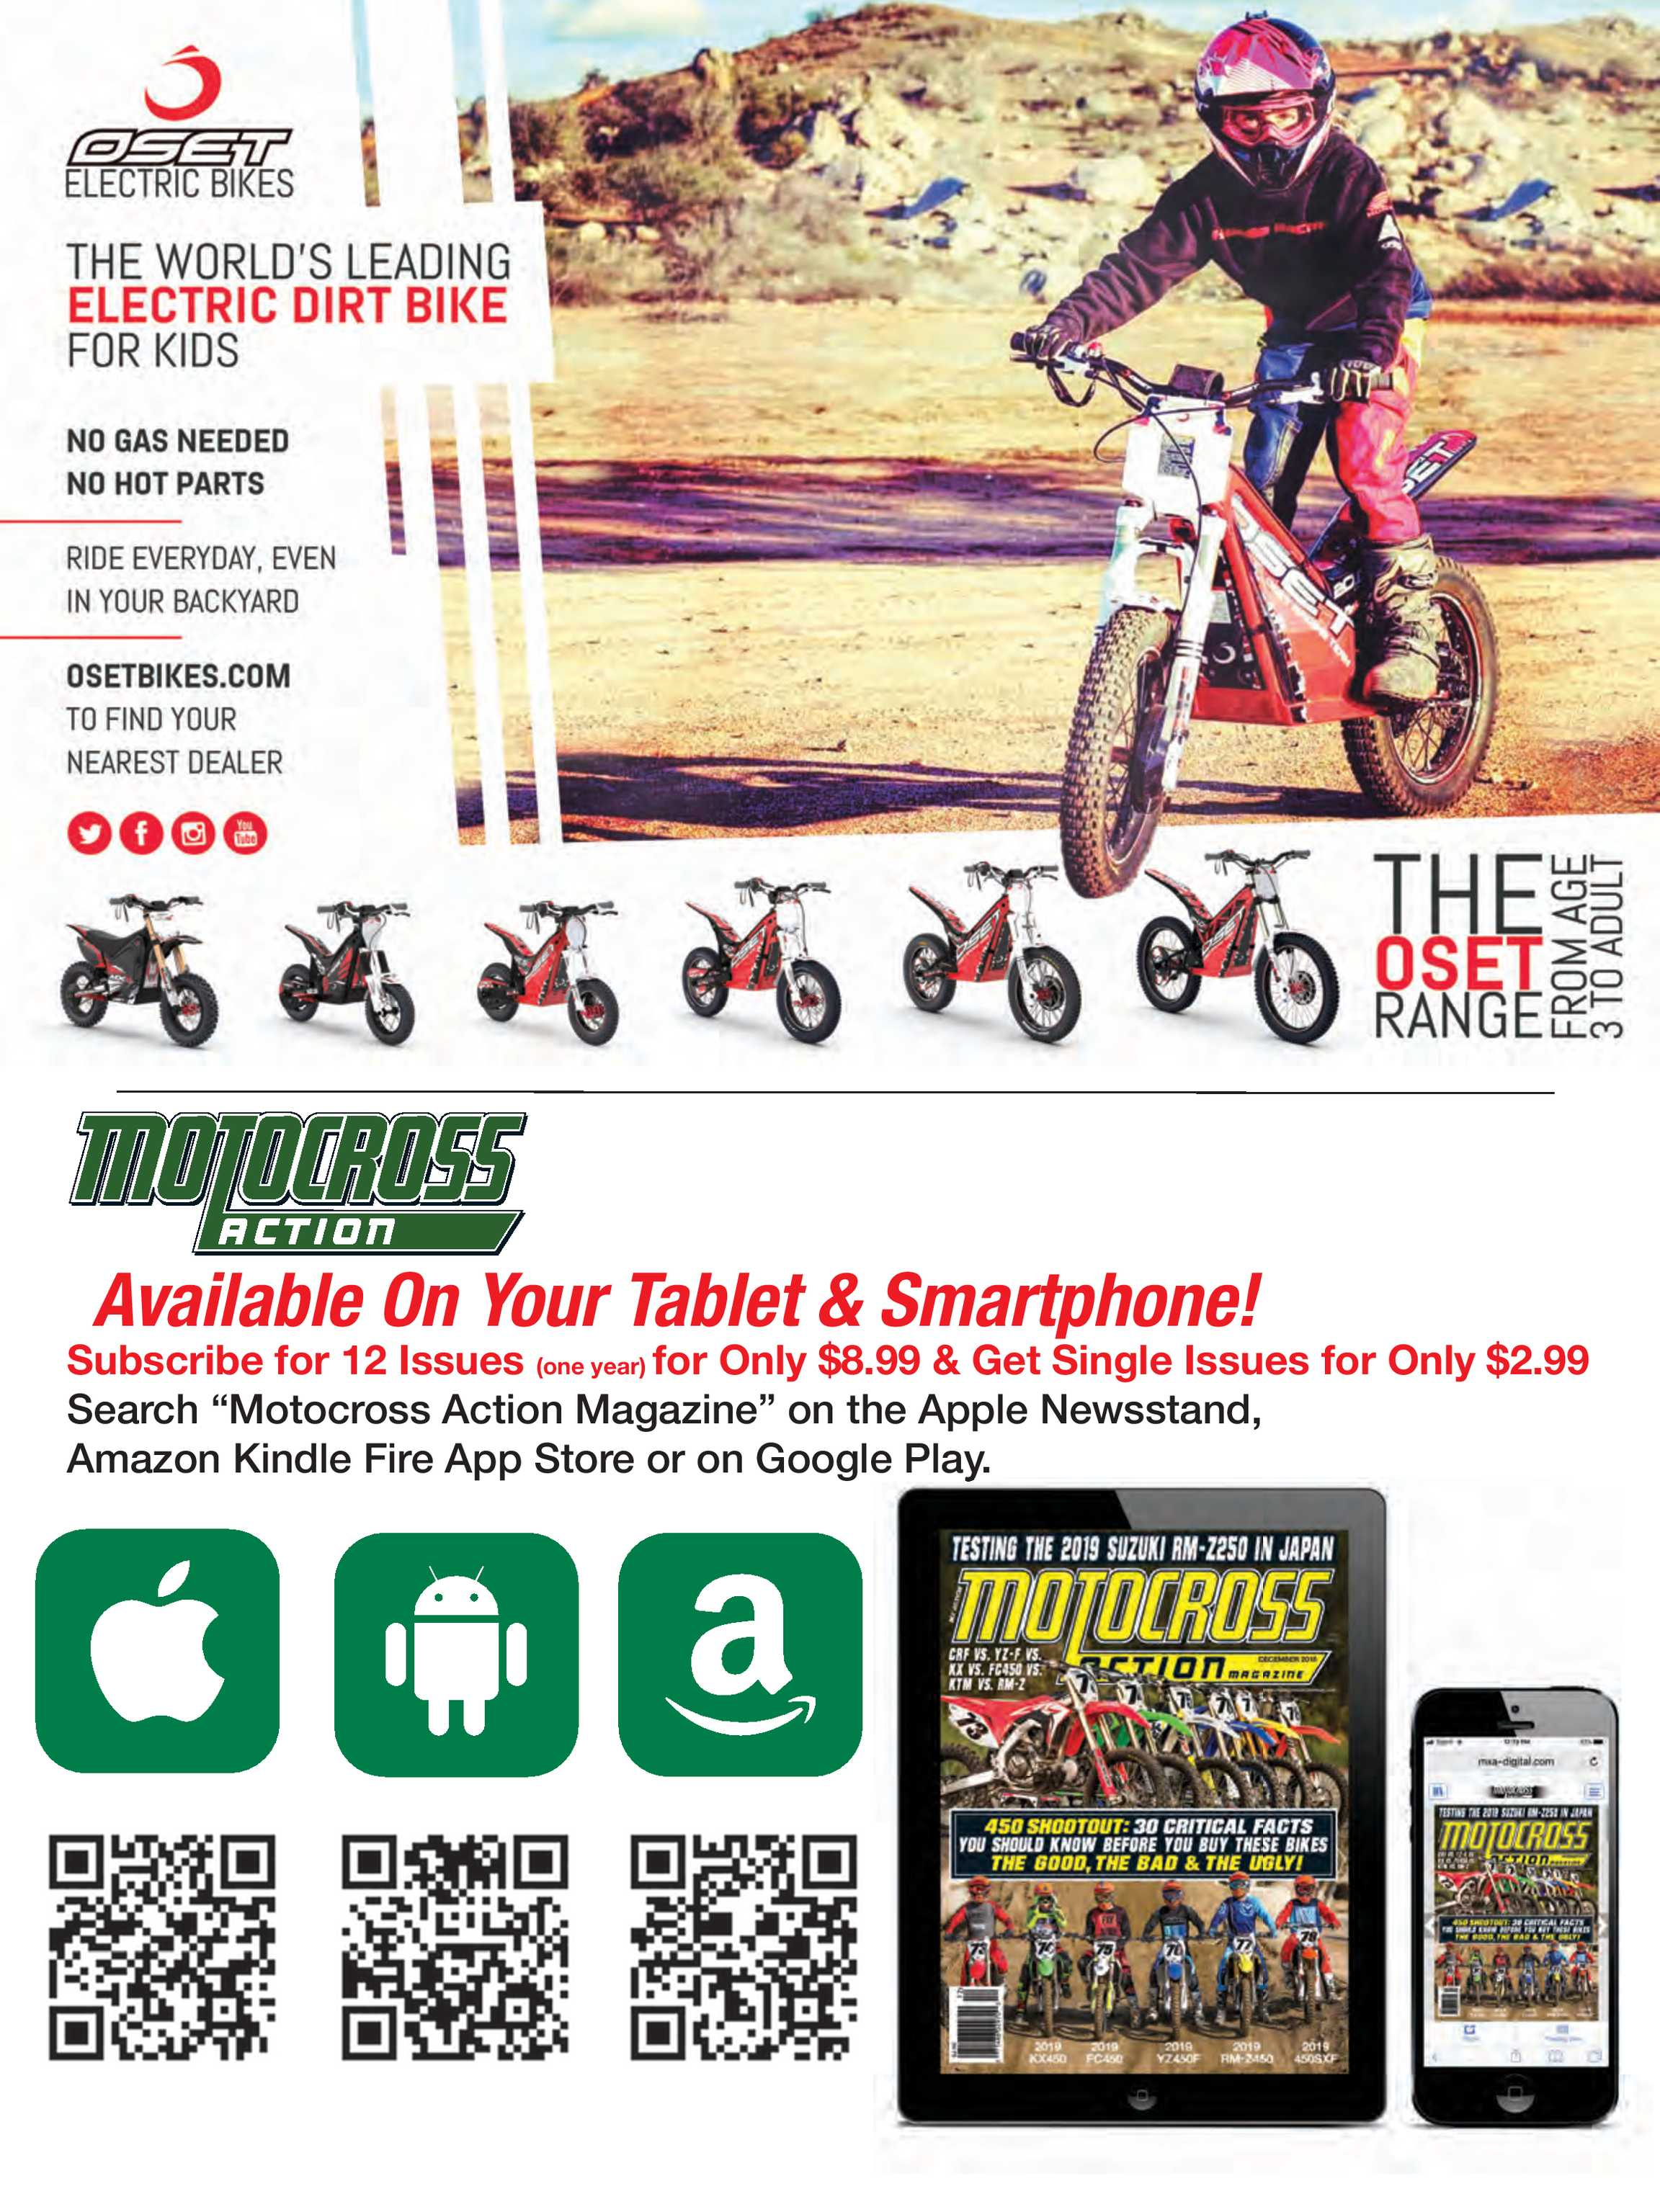 Motocross Action Magazine - July 2019 - page 110